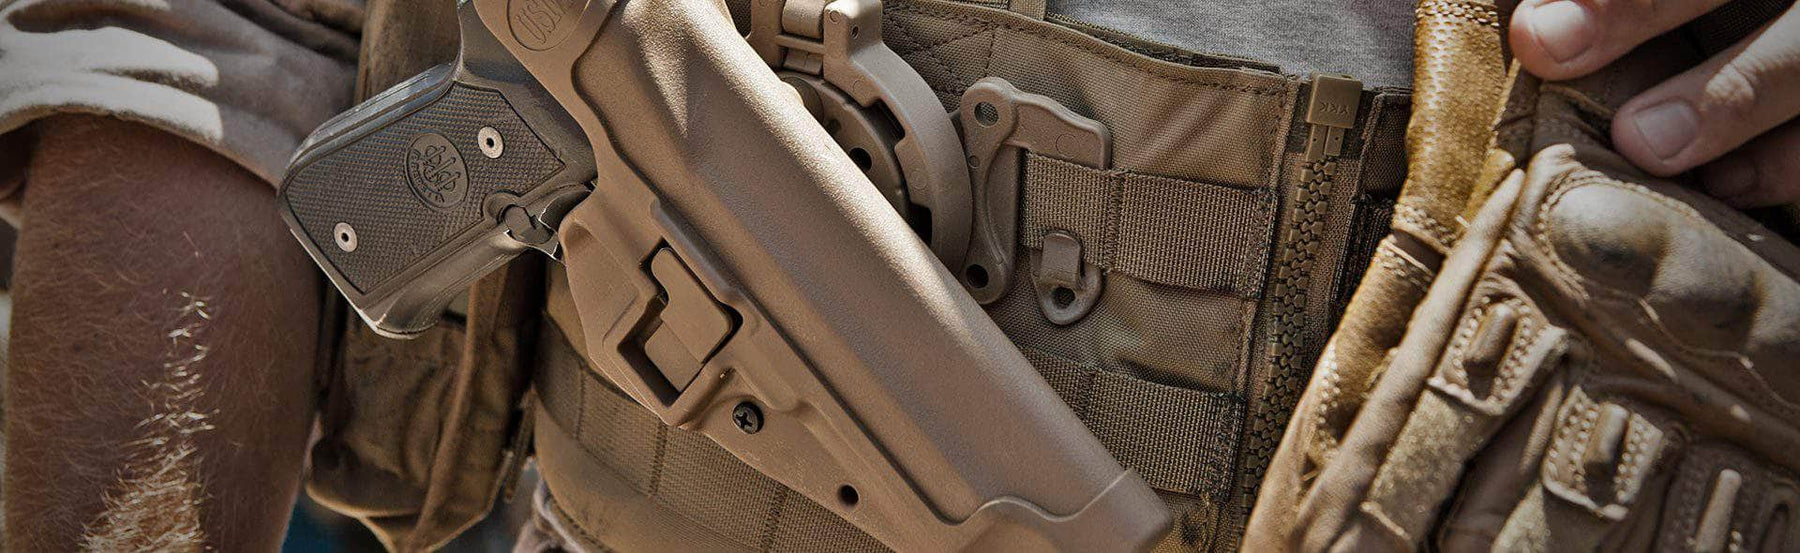 Blackhawk : l'apparition du holster Serpa